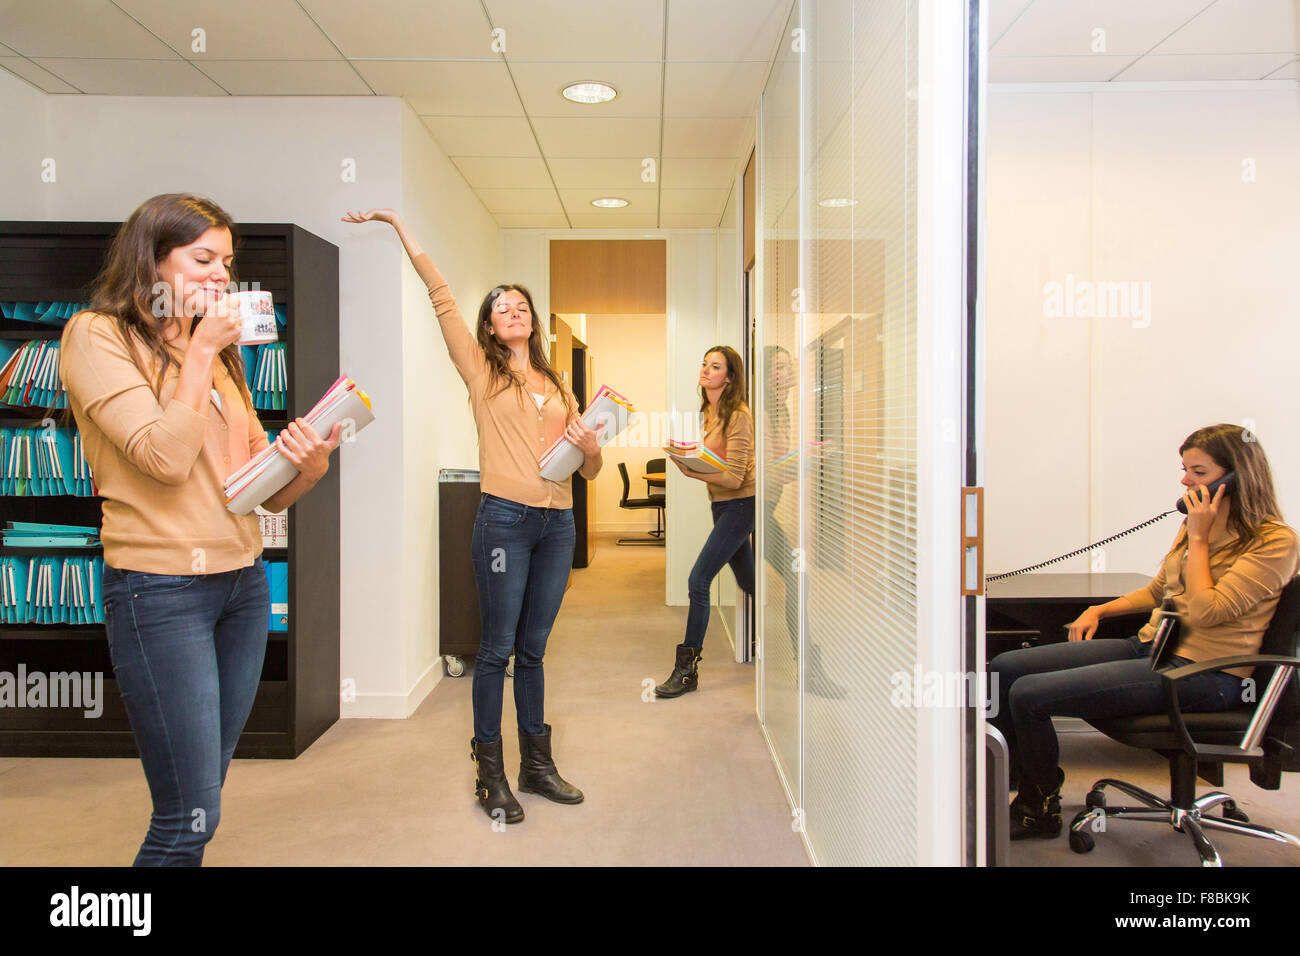 Active woman in the office to fight against physical inactivity. - Stock Image